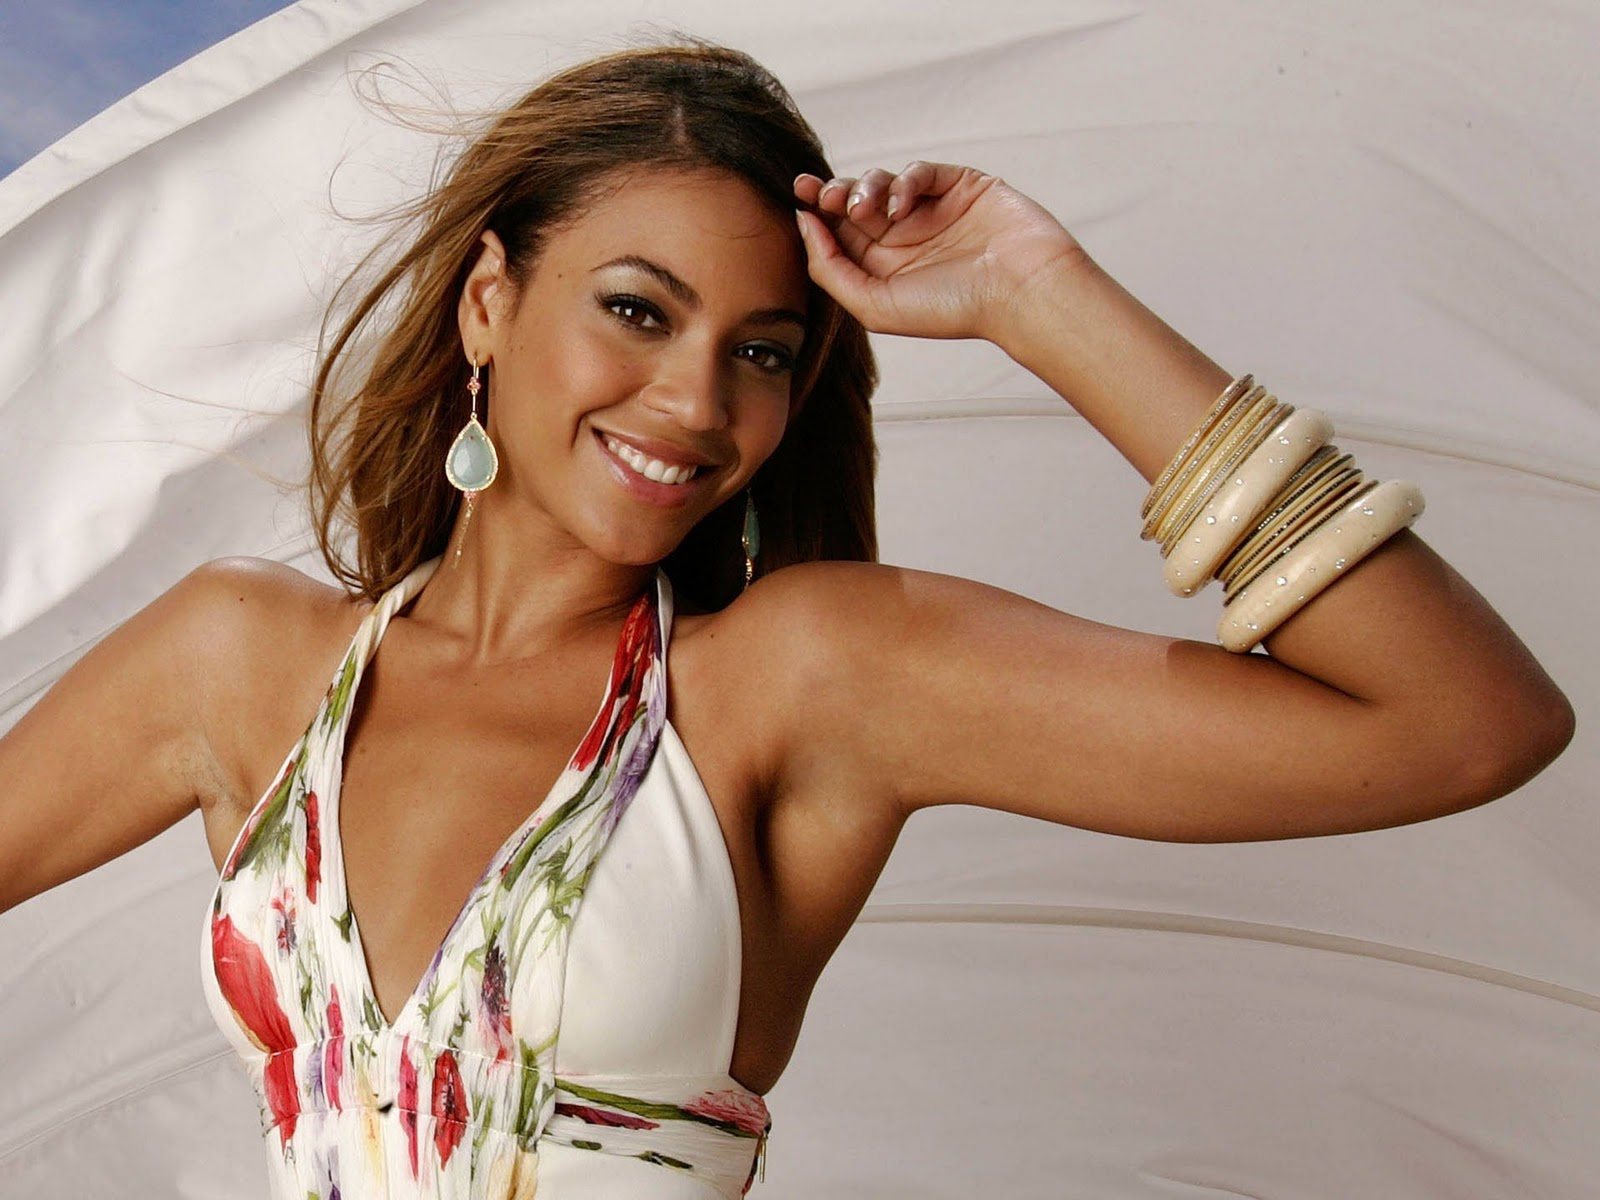 http://2.bp.blogspot.com/-IPnY2QRJwlQ/TnRHrrF2bcI/AAAAAAAABM4/XC8hx1UA3lw/s1600/Beyonce_Knowles_Actress_Free_Download_High_Resolution_HD_HQ_Desktop_Backgrounds_Face_Wallpapers_21026.jpg